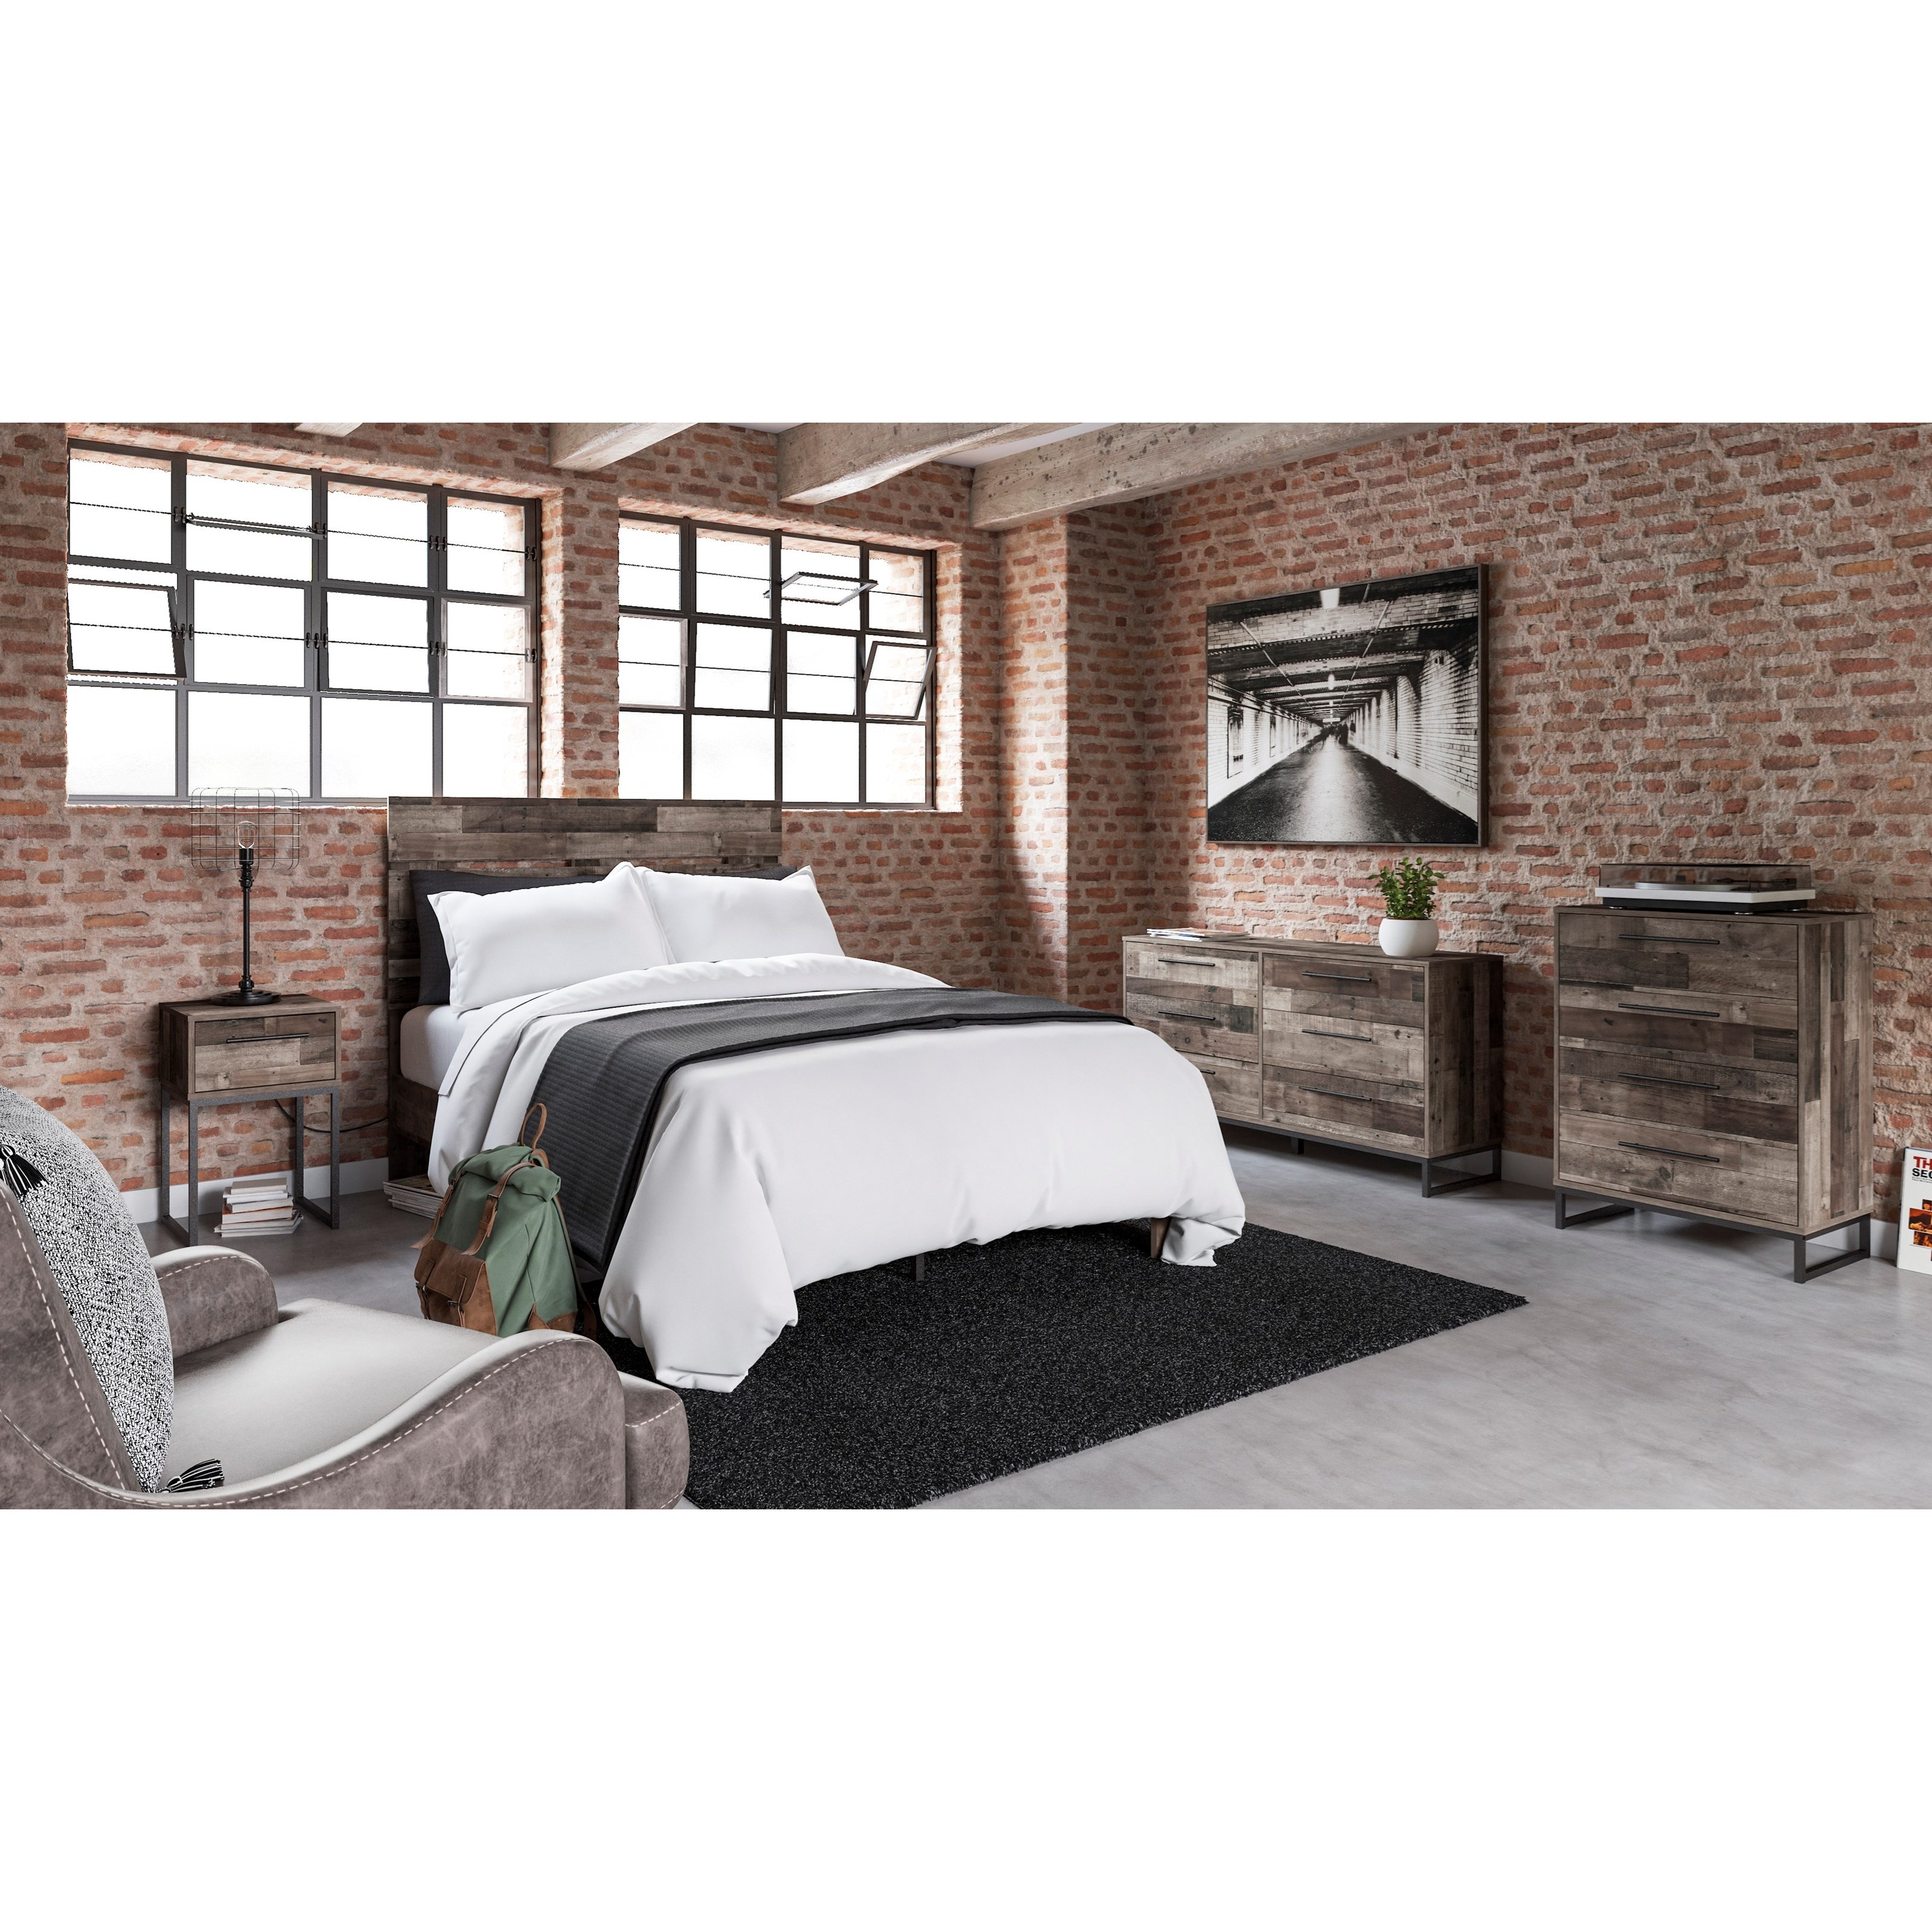 Neilsville Full Bedroom Group by Signature Design by Ashley at Zak's Warehouse Clearance Center